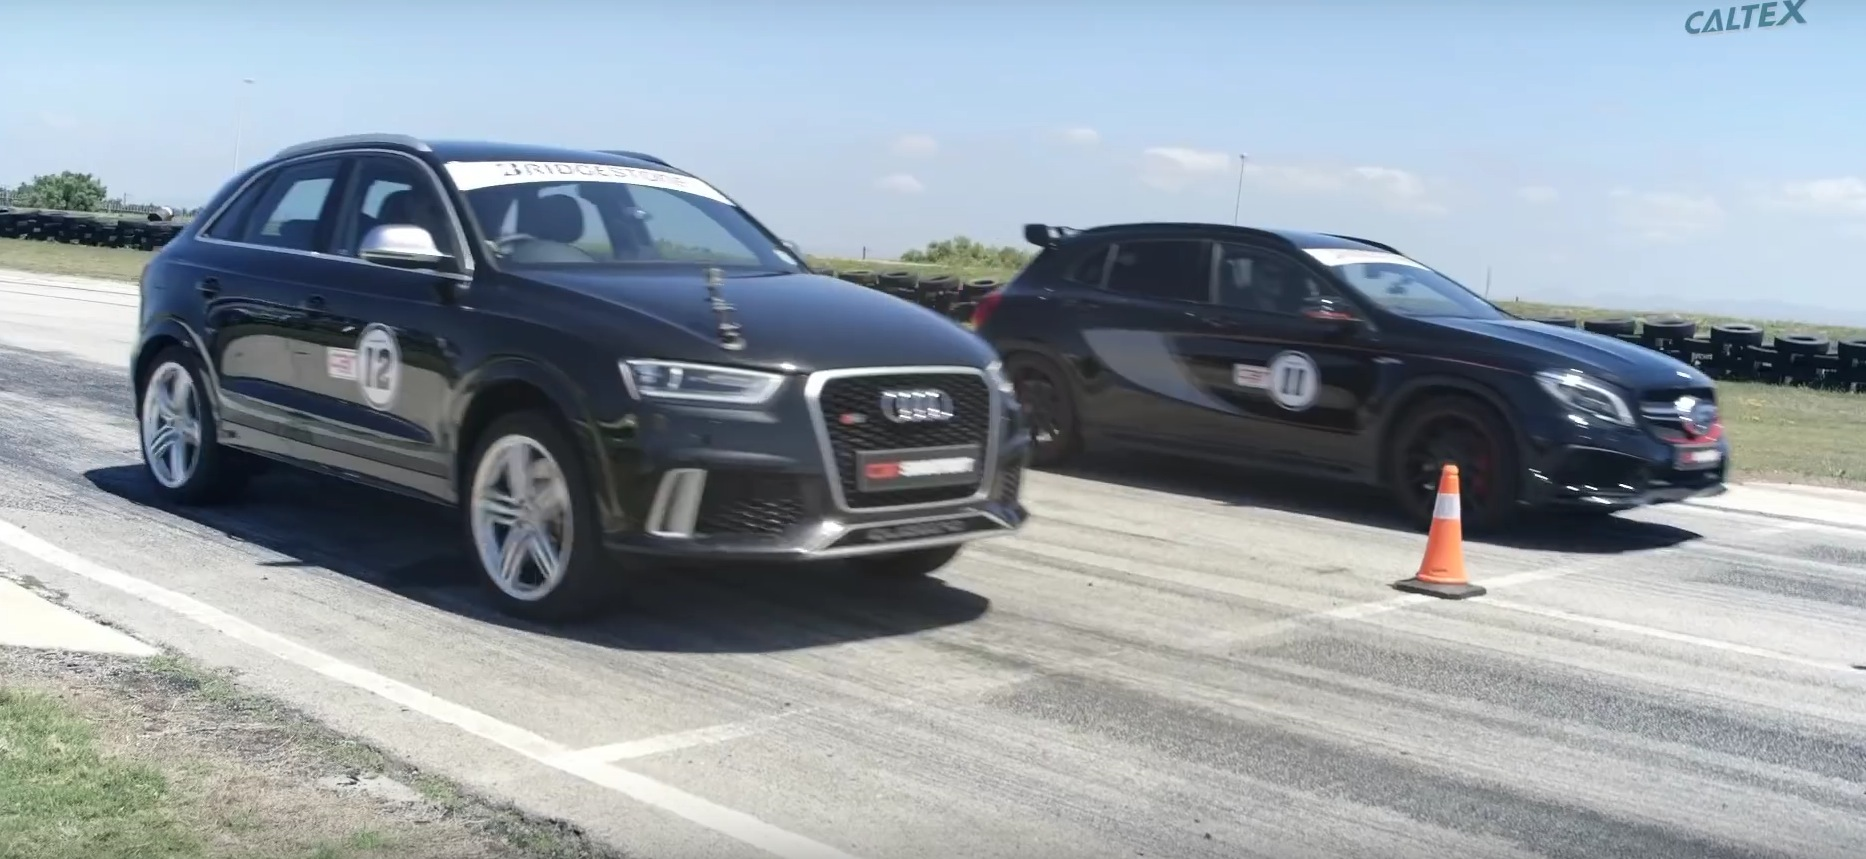 Drag Race: Mercedes GLA 45 AMG vs. Audi RS Q3 - autoevolution